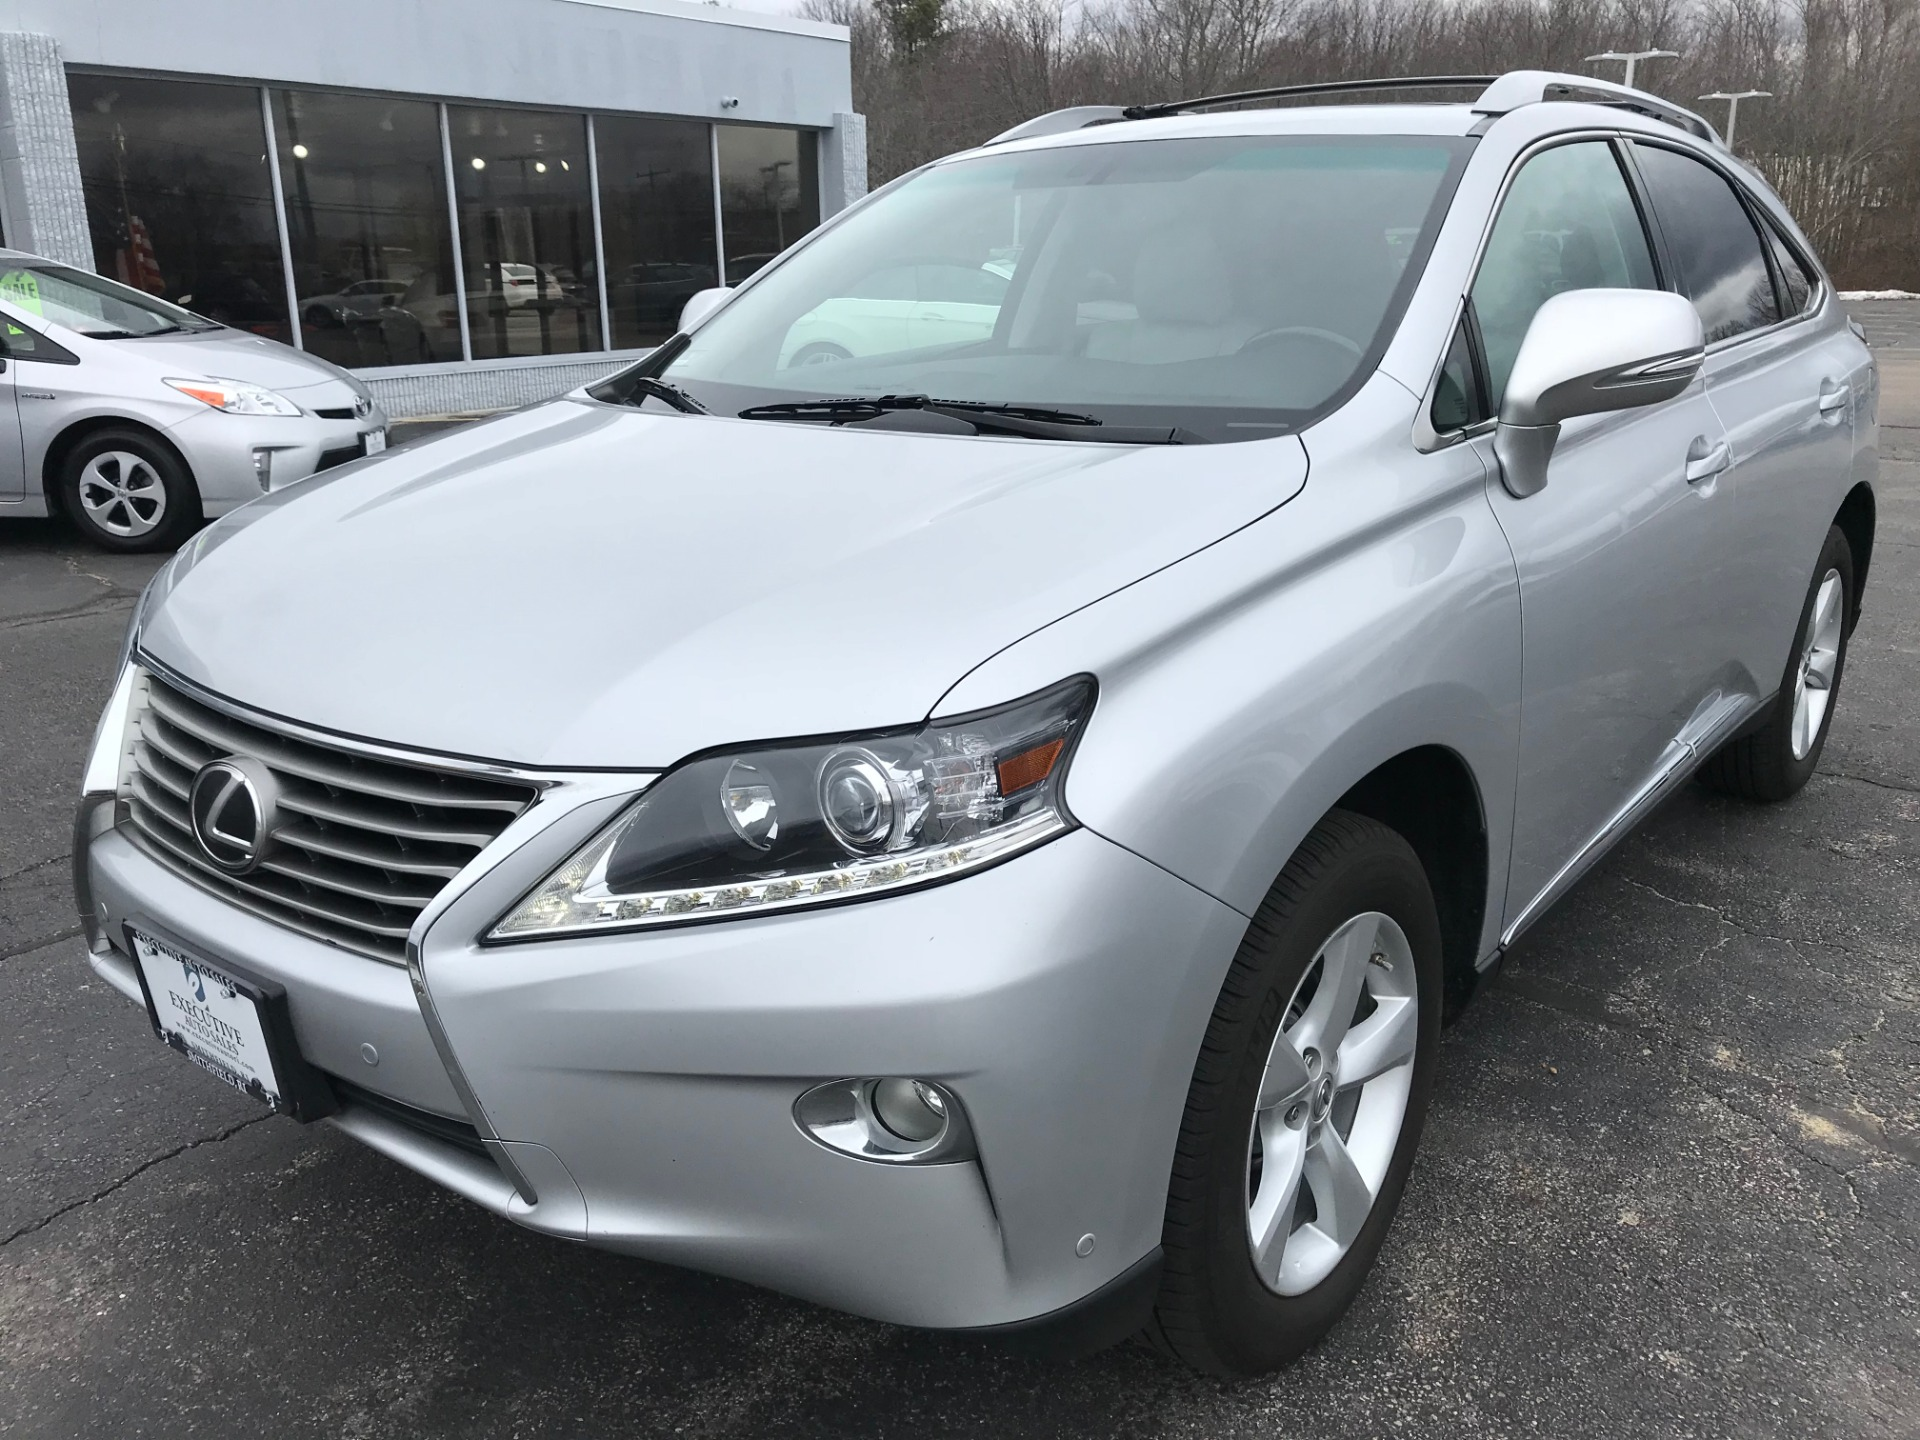 2013 lexus rx350 350 stock 1528 for sale near smithfield ri ri lexus dealer. Black Bedroom Furniture Sets. Home Design Ideas